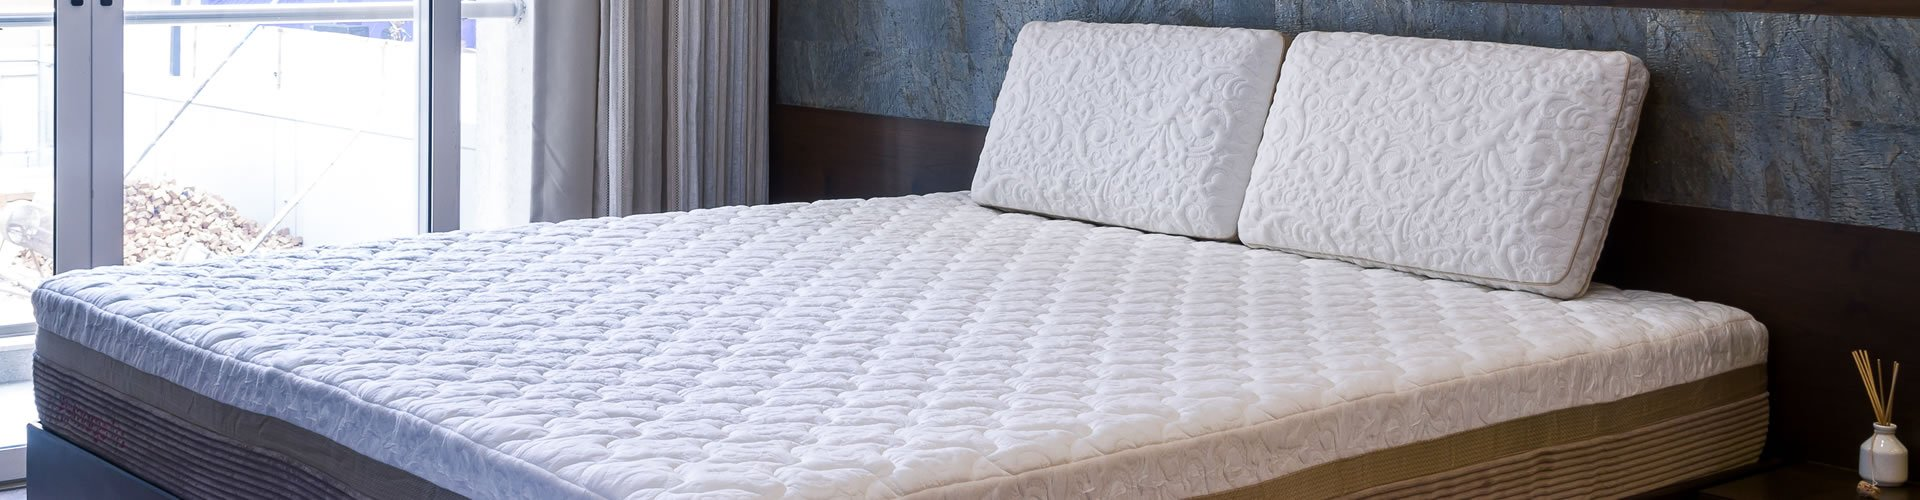 Best Mattresses for Fibromyalgia Reviewed in Detail